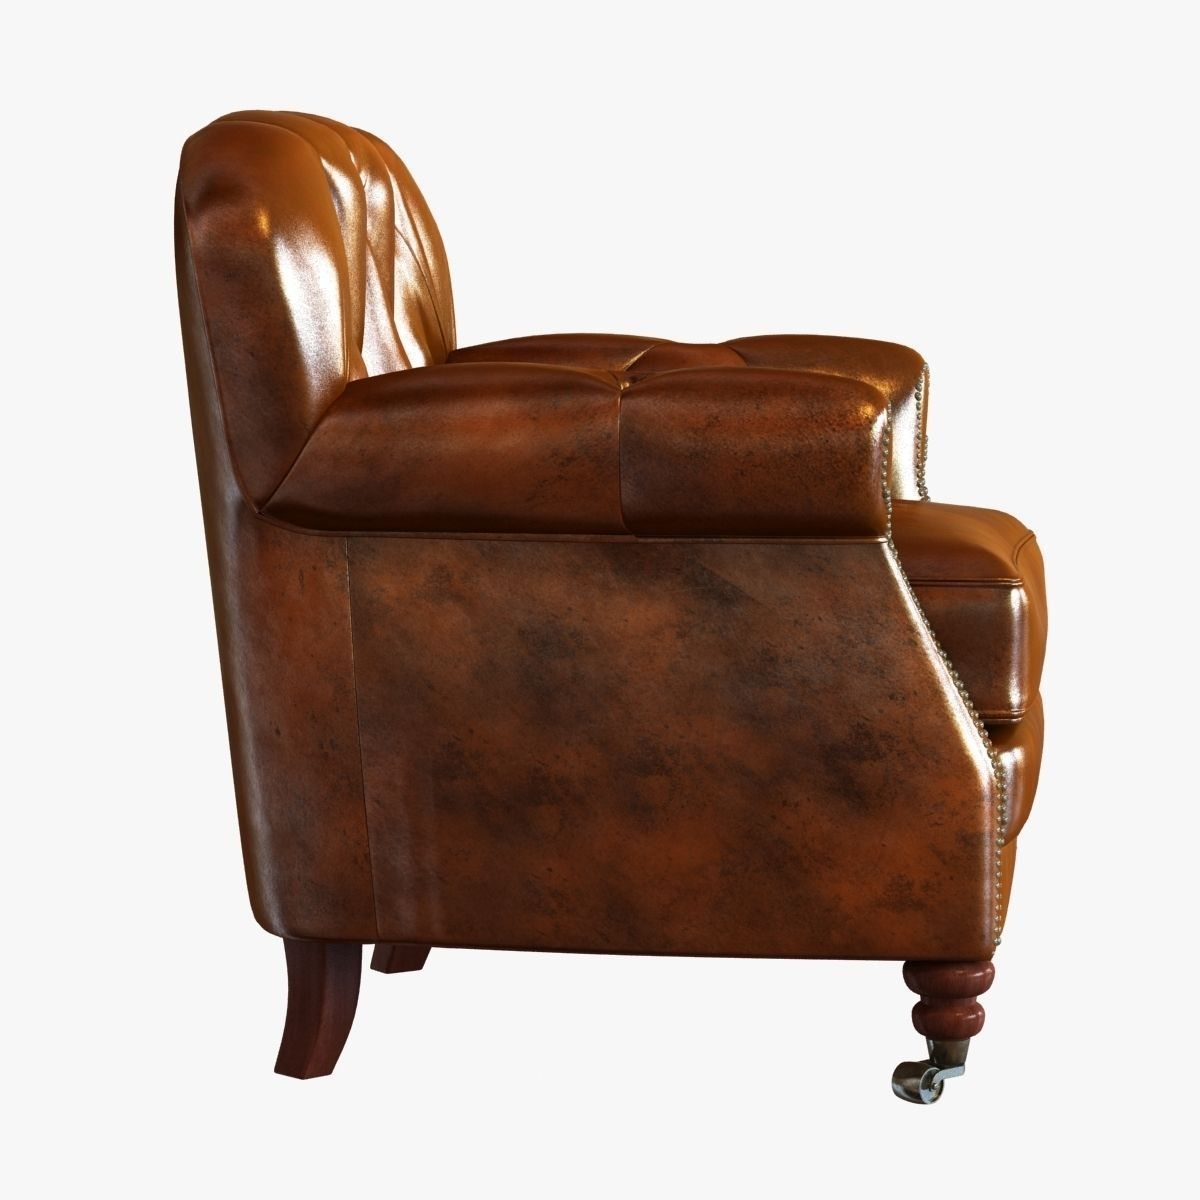 noir furniture chairs topcon chair and stand club vintage cigar leather 3d model